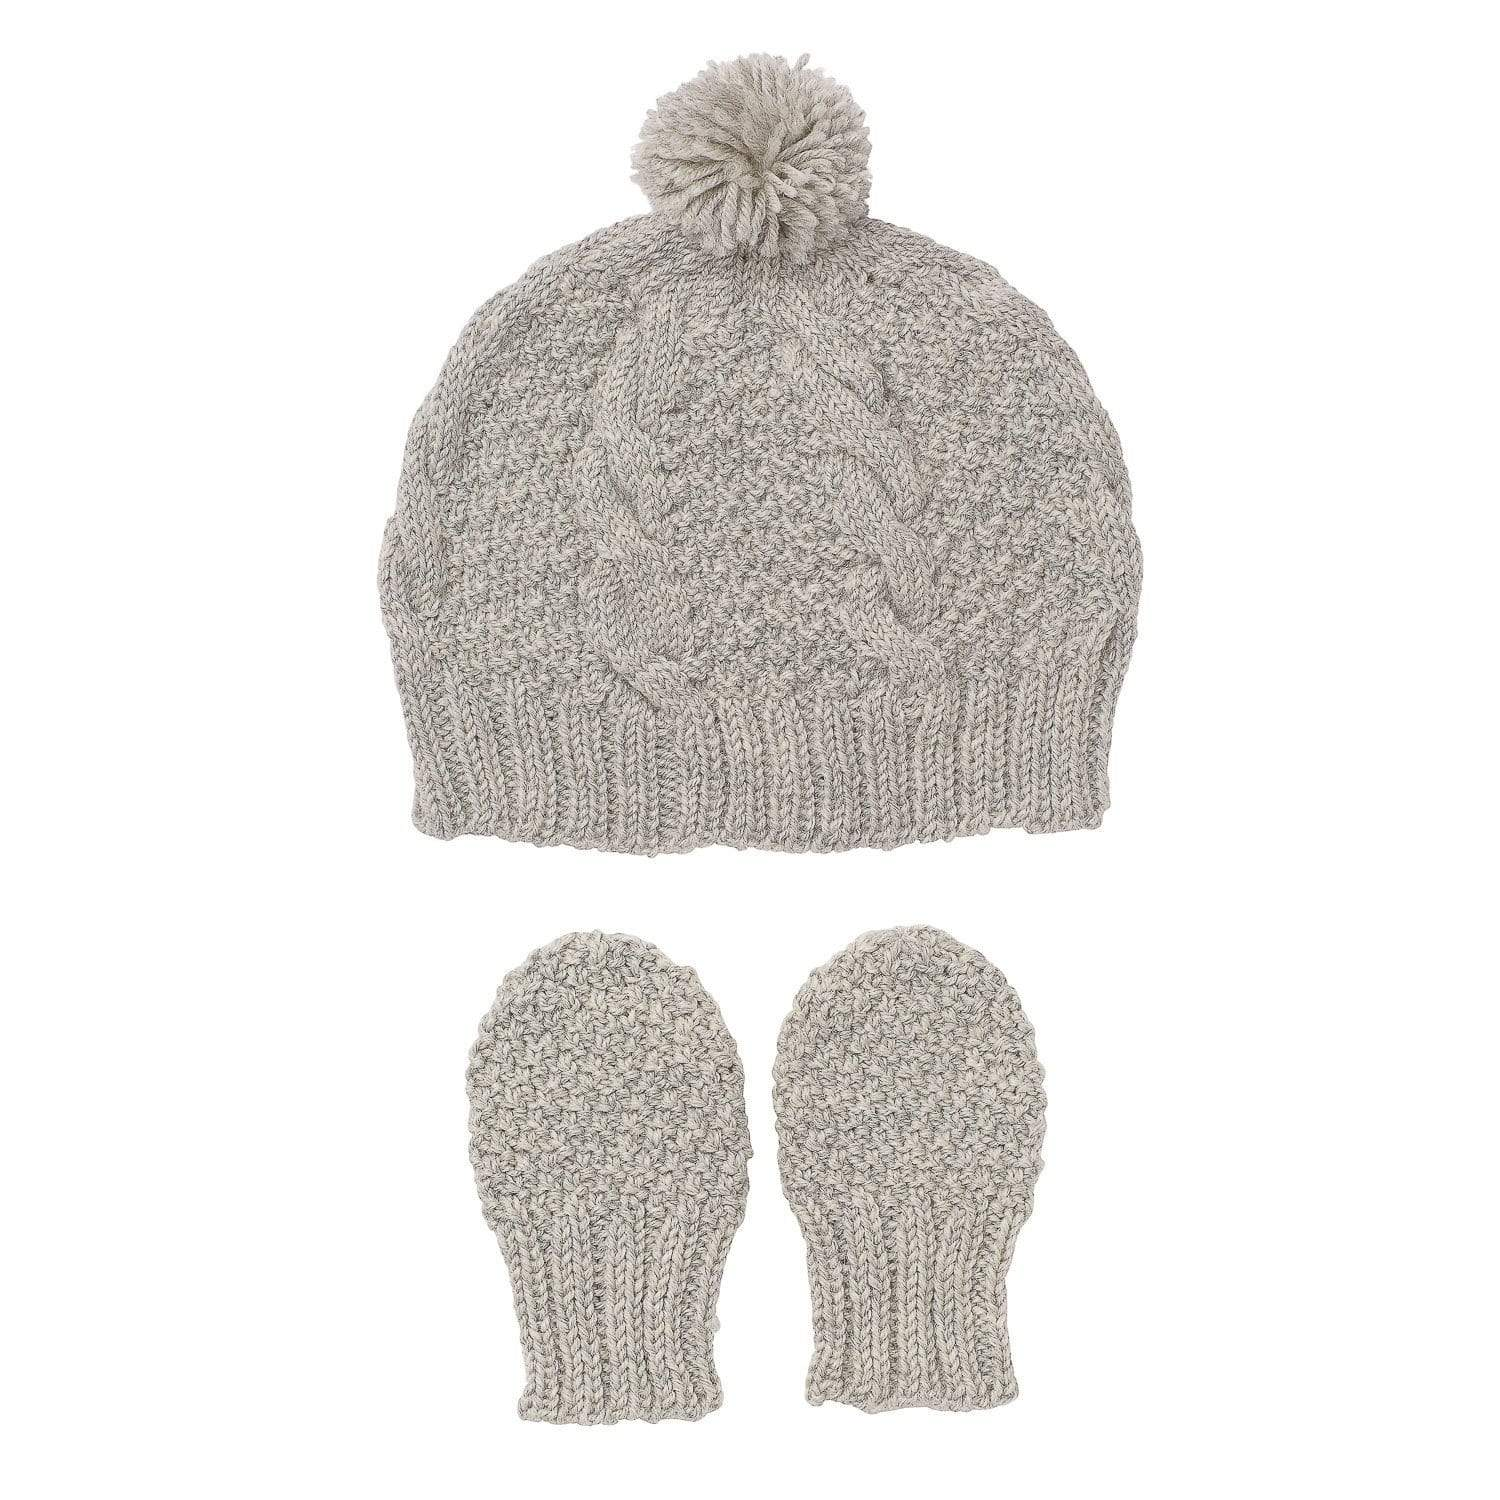 Acorn Vines Infant Beanie Mitten Set